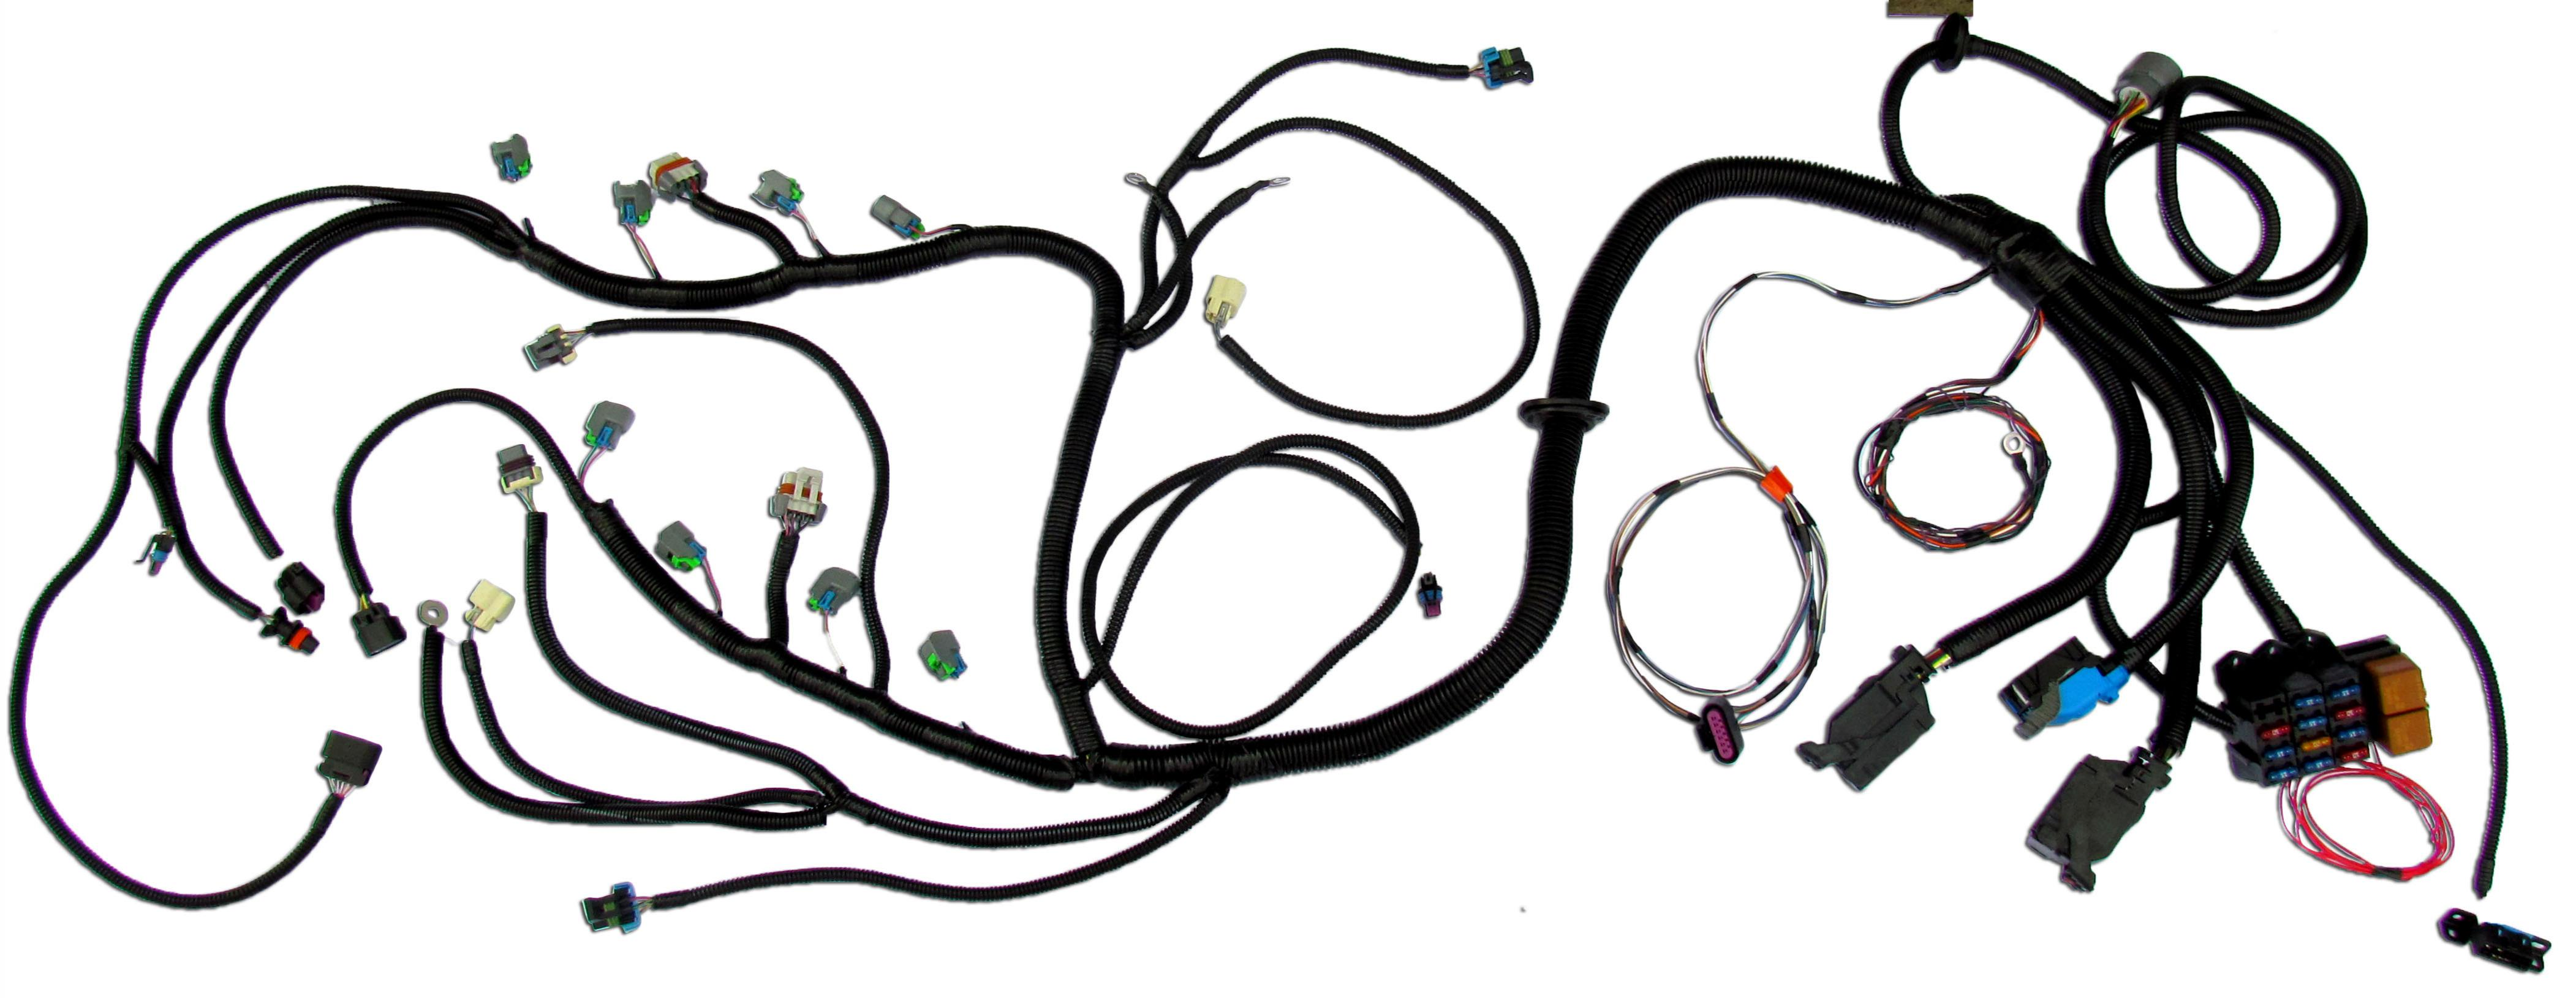 02 Bravada Aftermarket Wire Harness